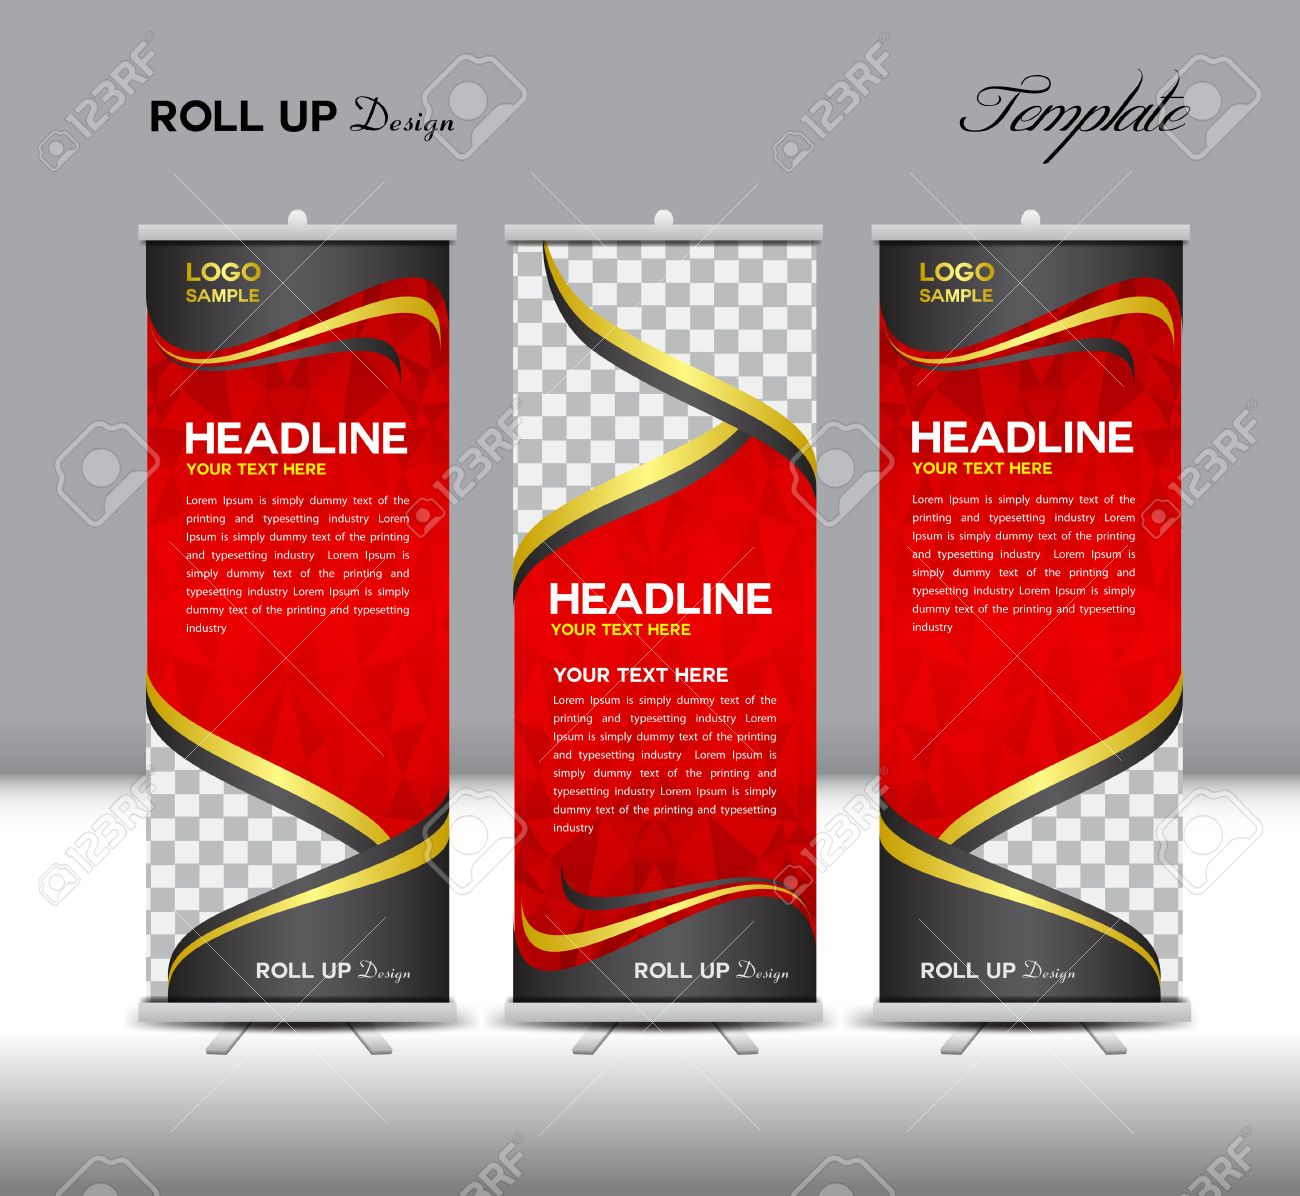 Design for roll up banner - Red Roll Up Banner Template Illustration Polygon Background Banner Design Standy Template